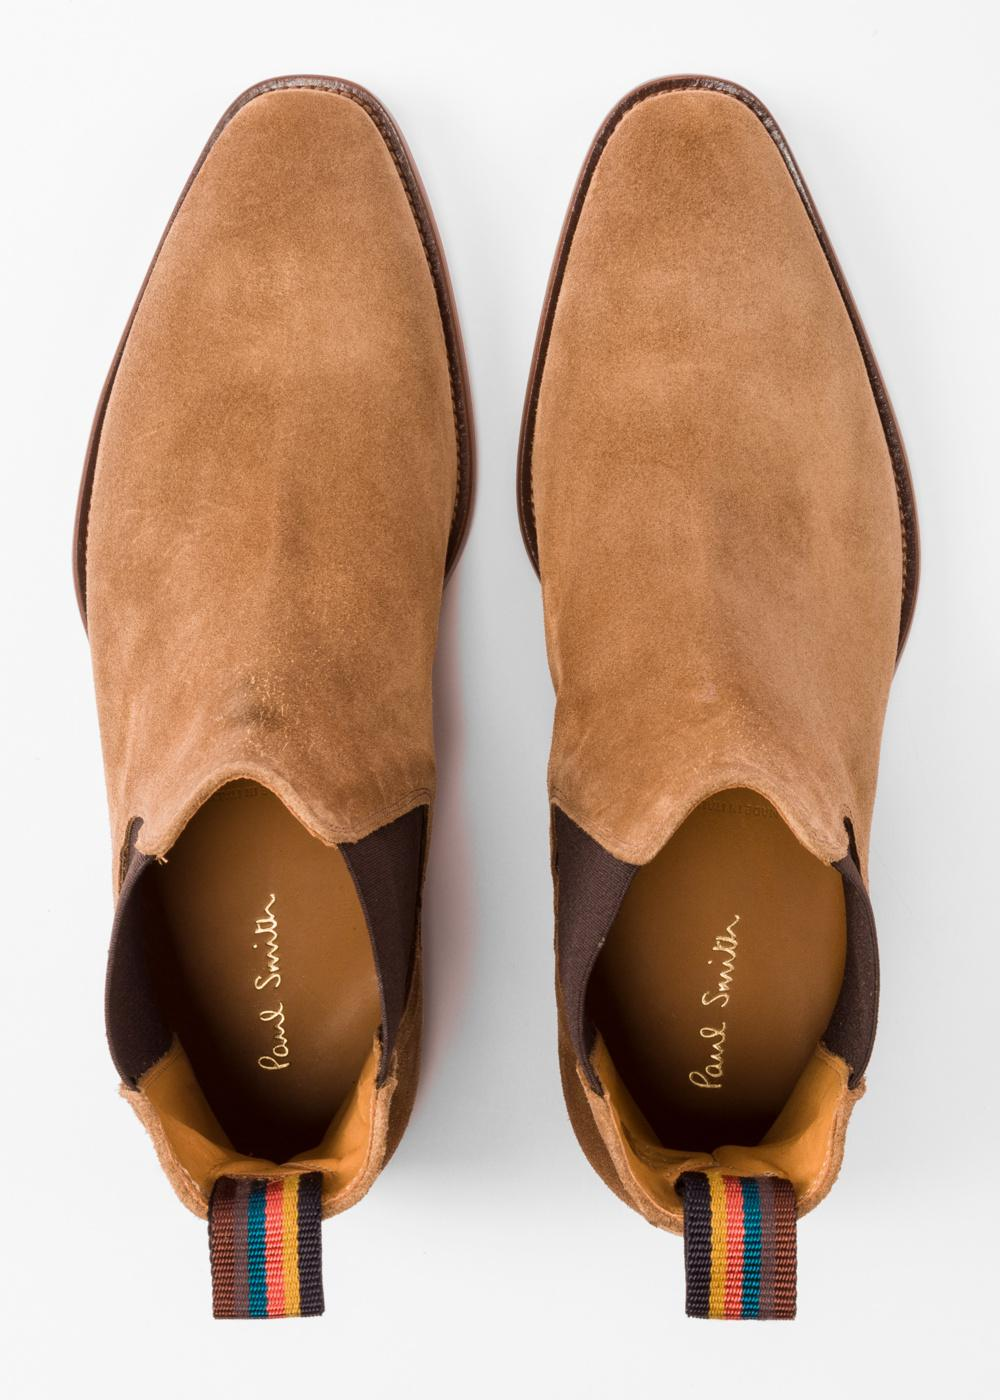 5633c2af8c8 Paul Smith Men's Camel Suede 'bobby' Chelsea Boots in Natural for ...